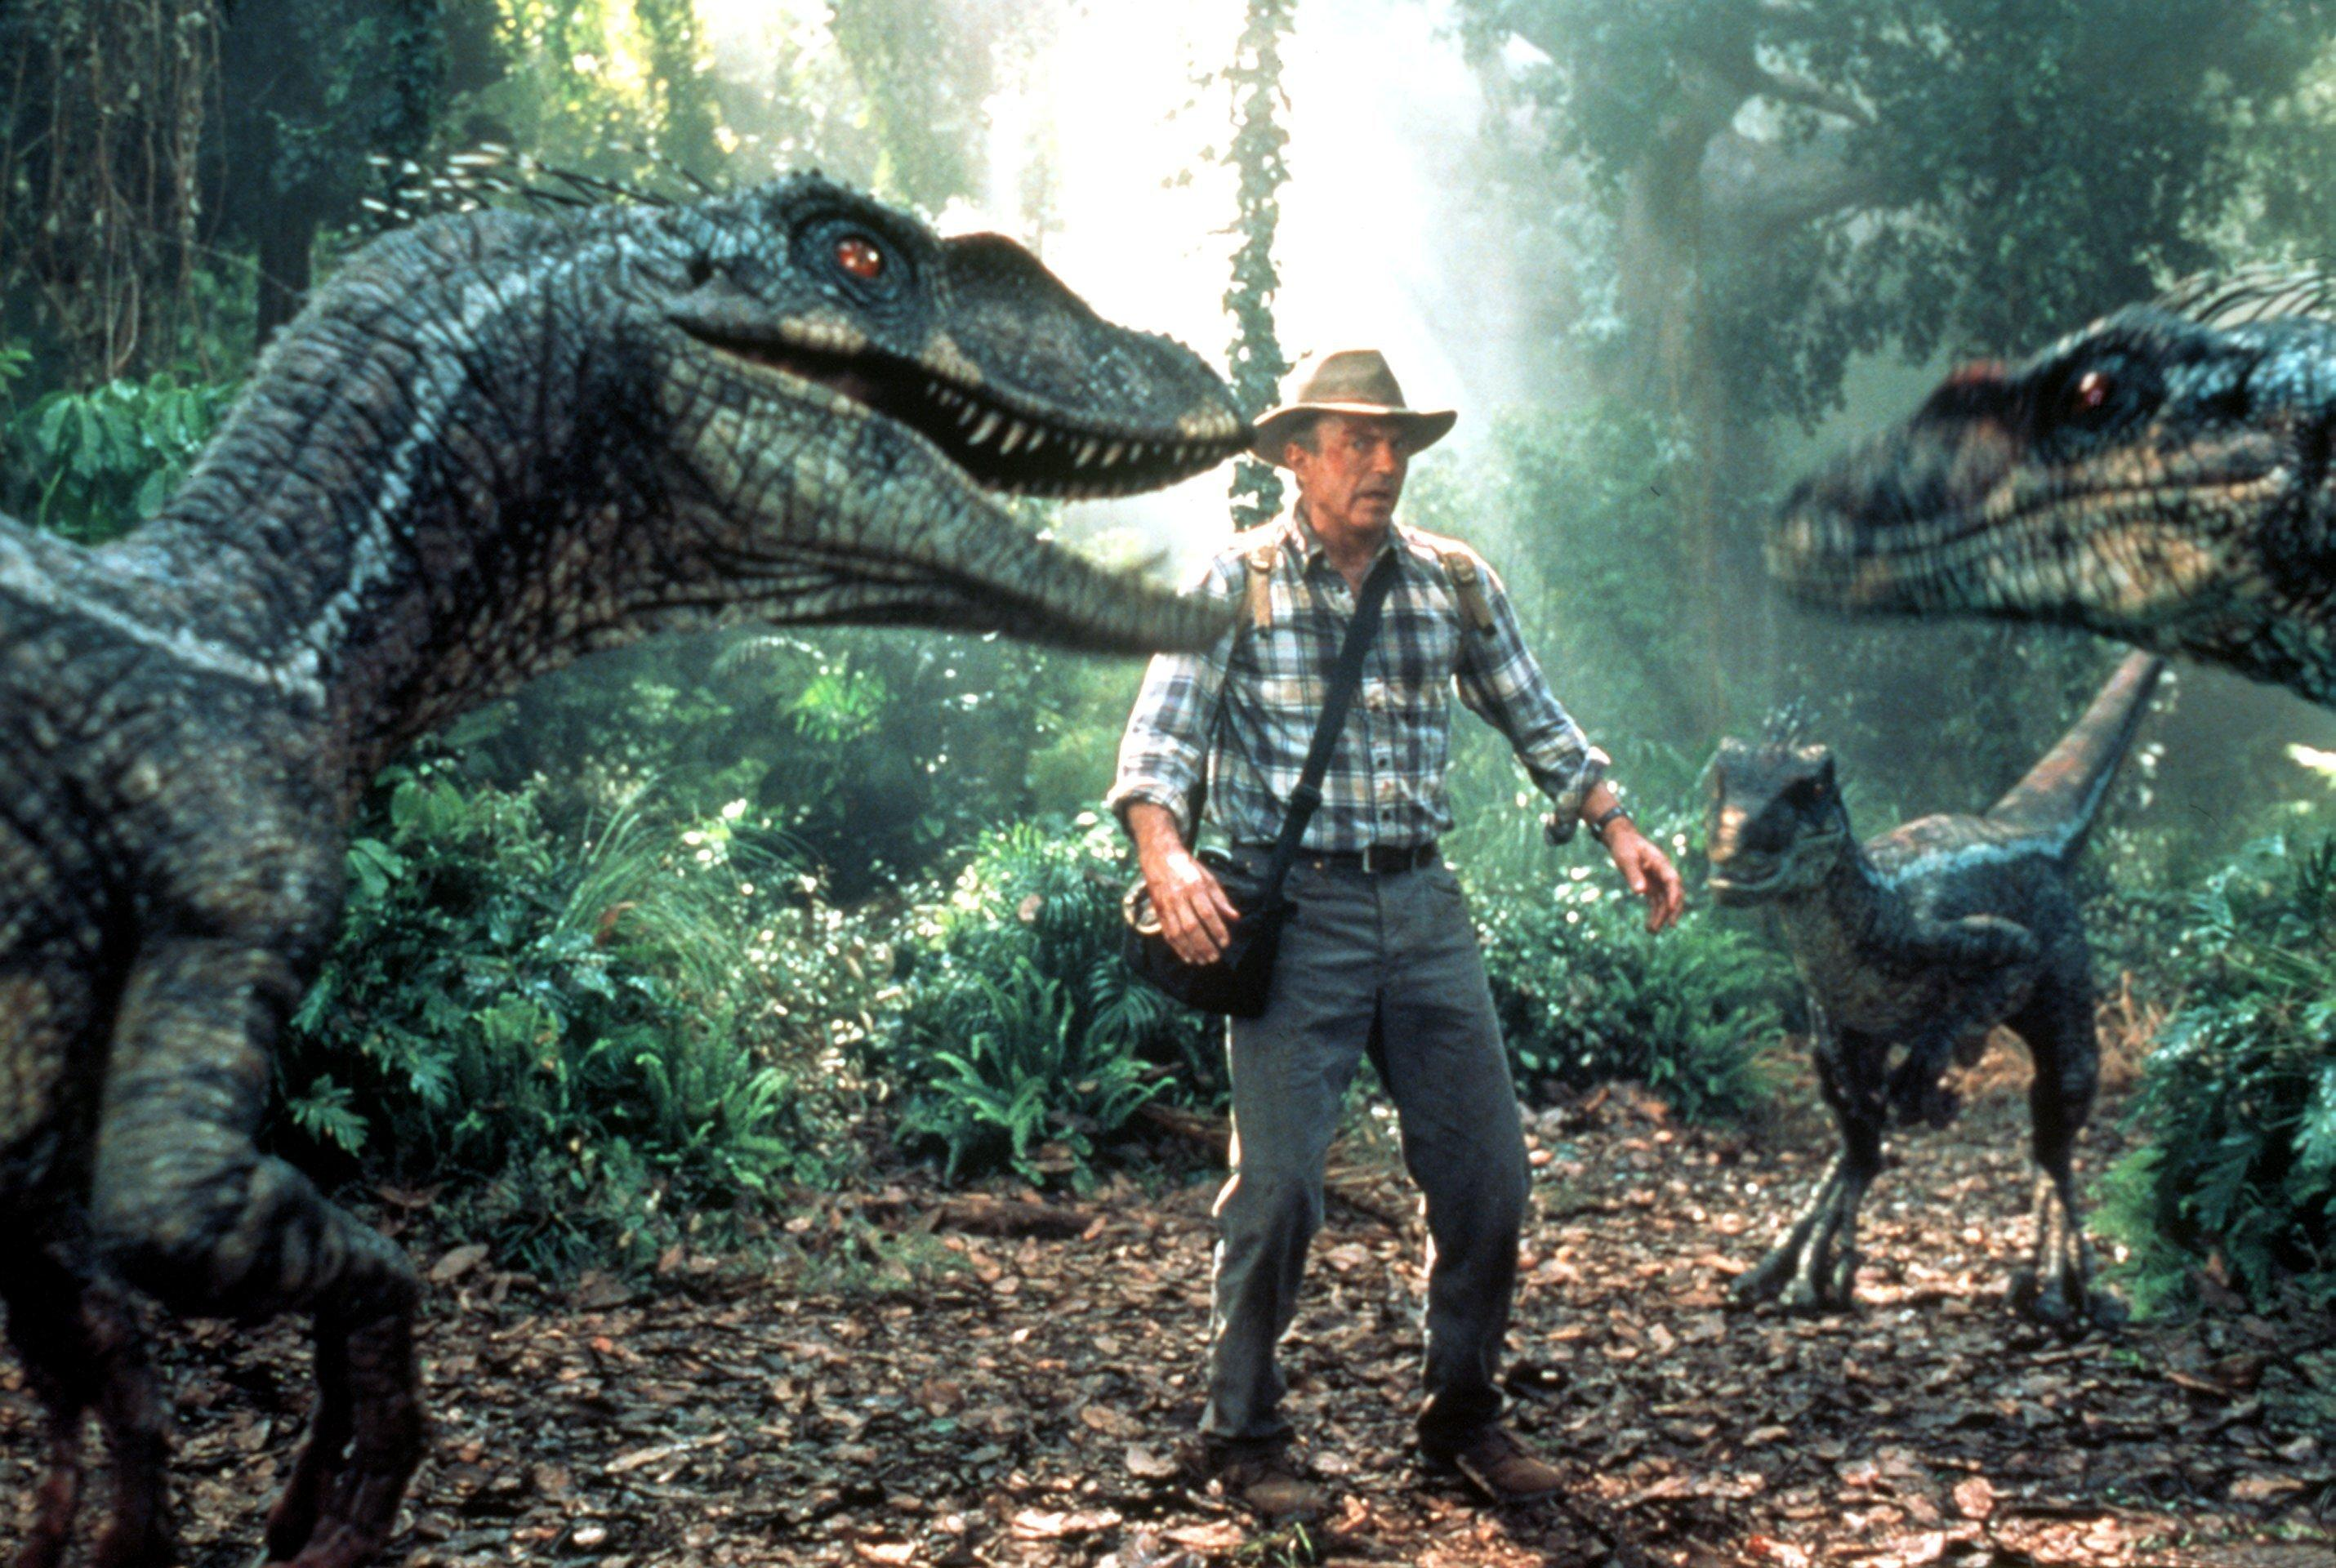 Jurassic Park star Sam Neill is being lined-up to play Eddie Jones' dad in a new film